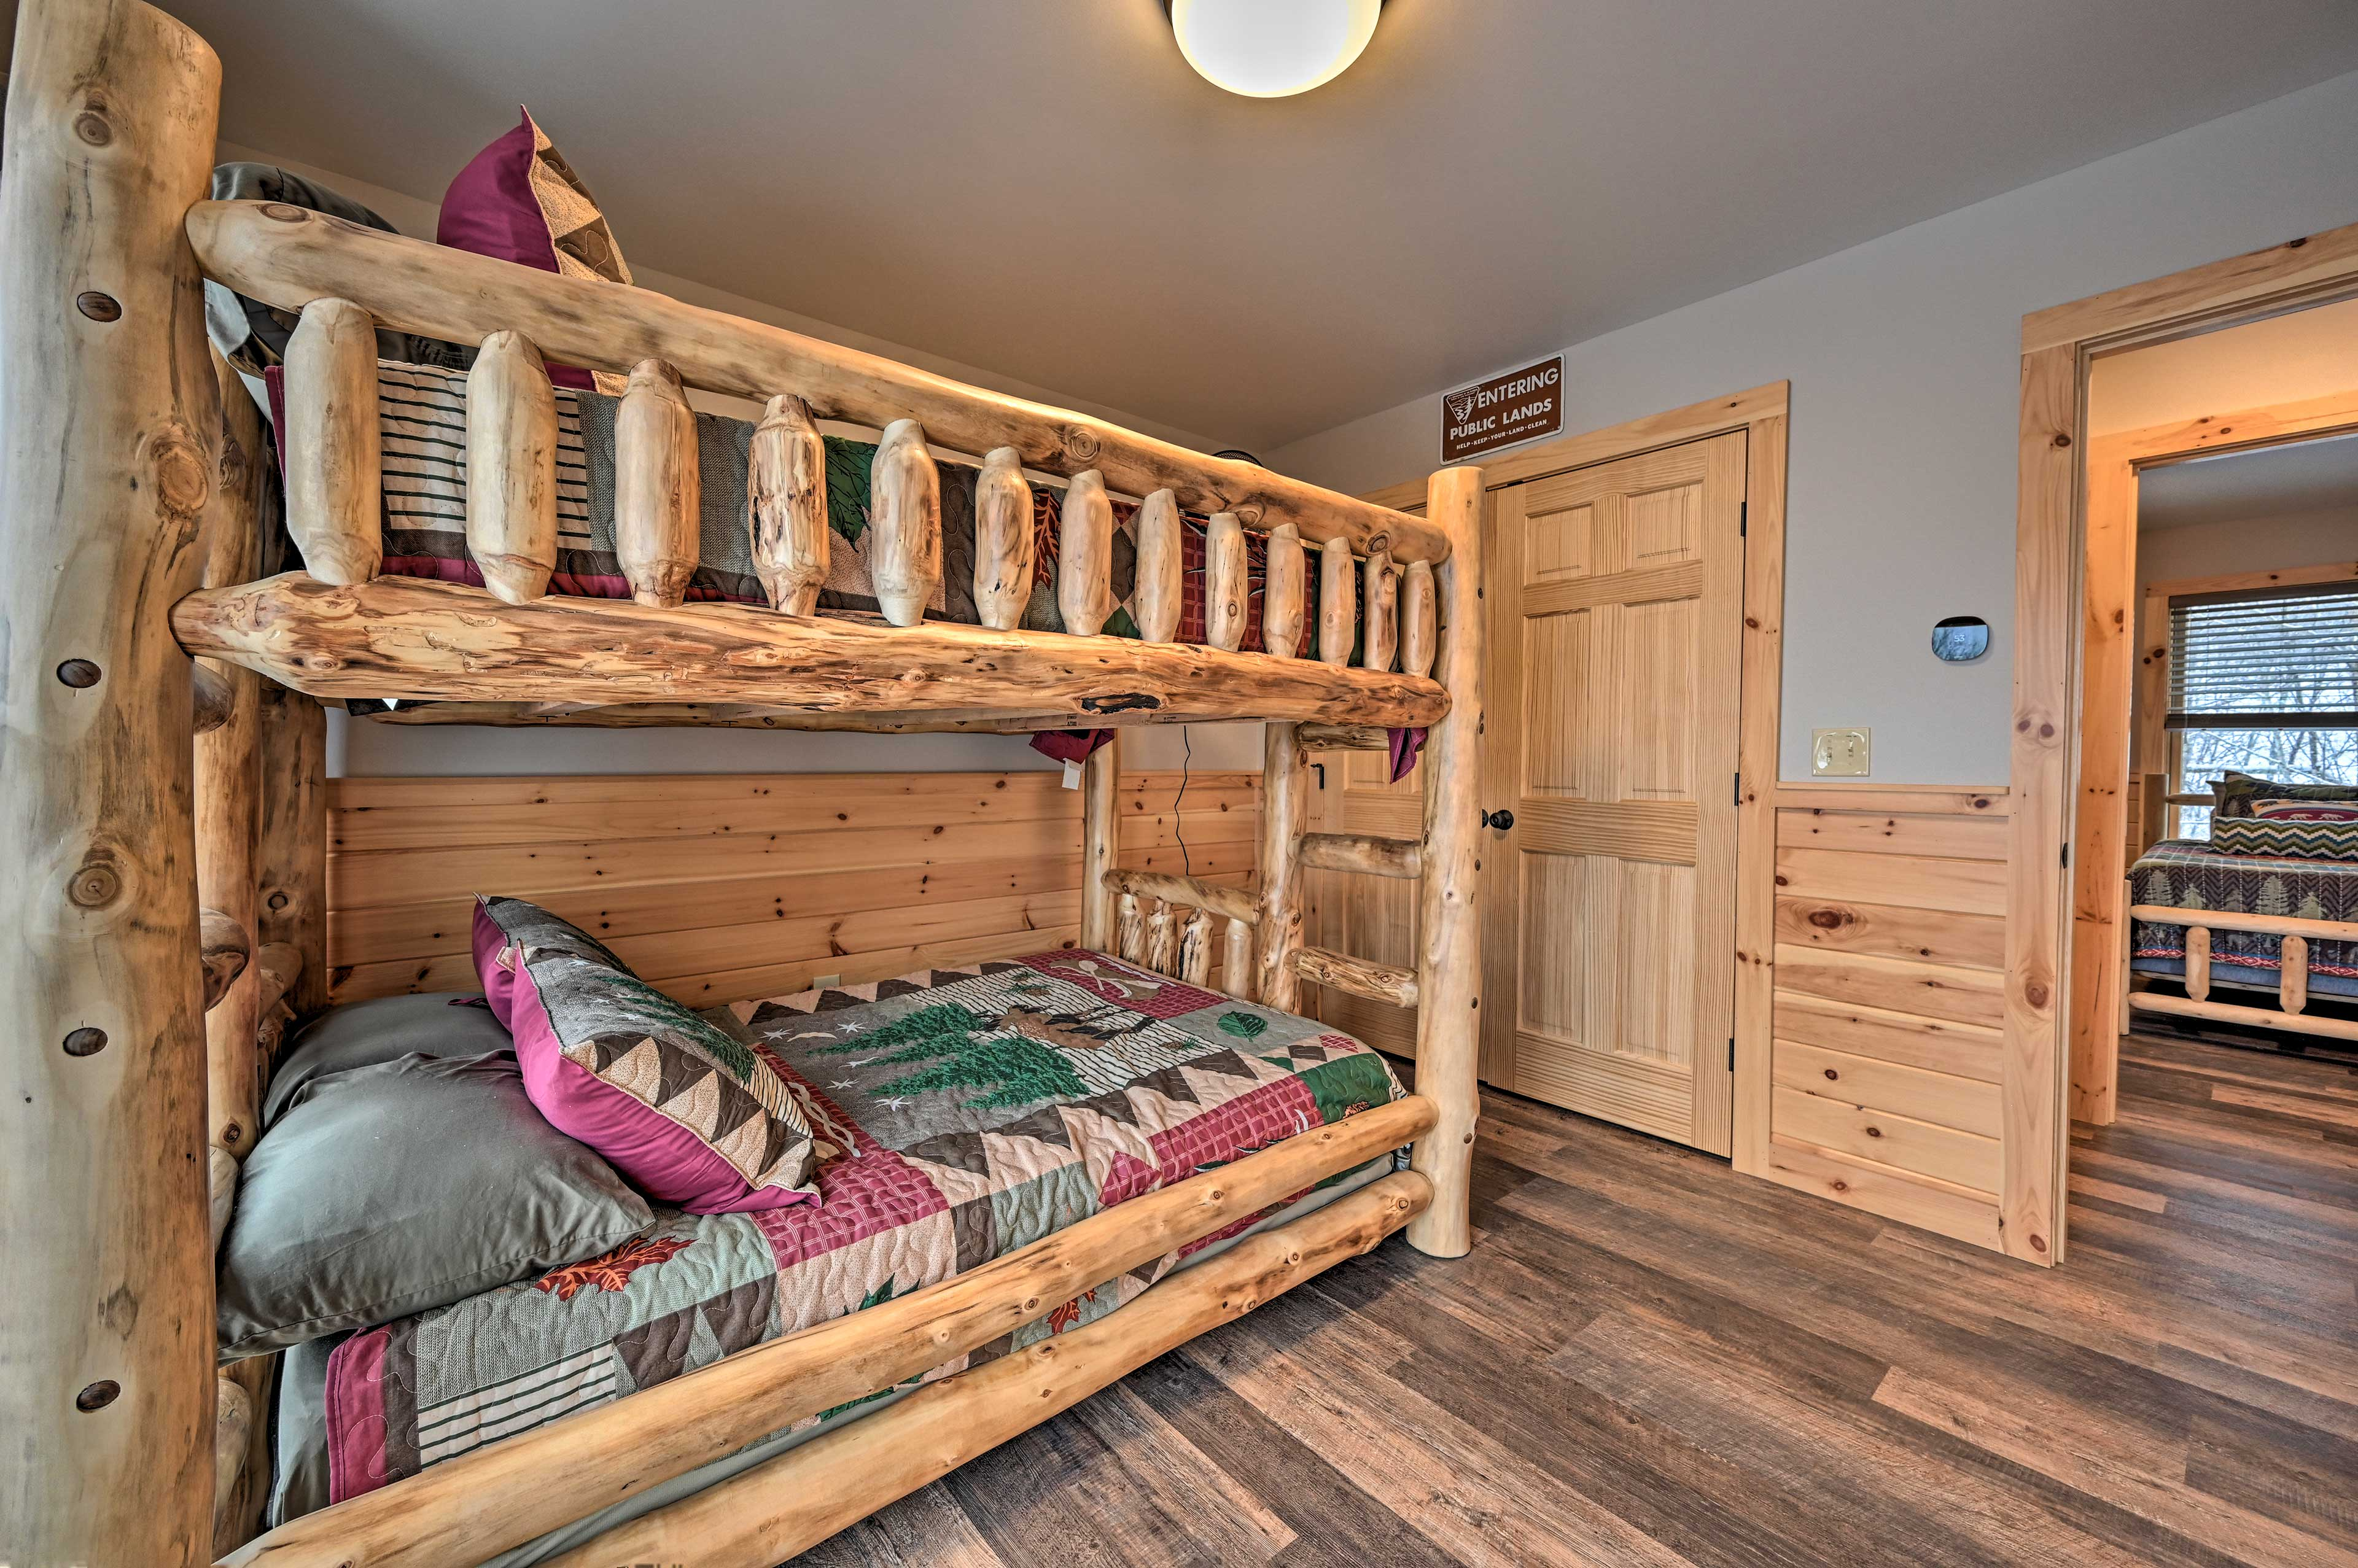 Be first to call dibs on the top or bottom full bunk.